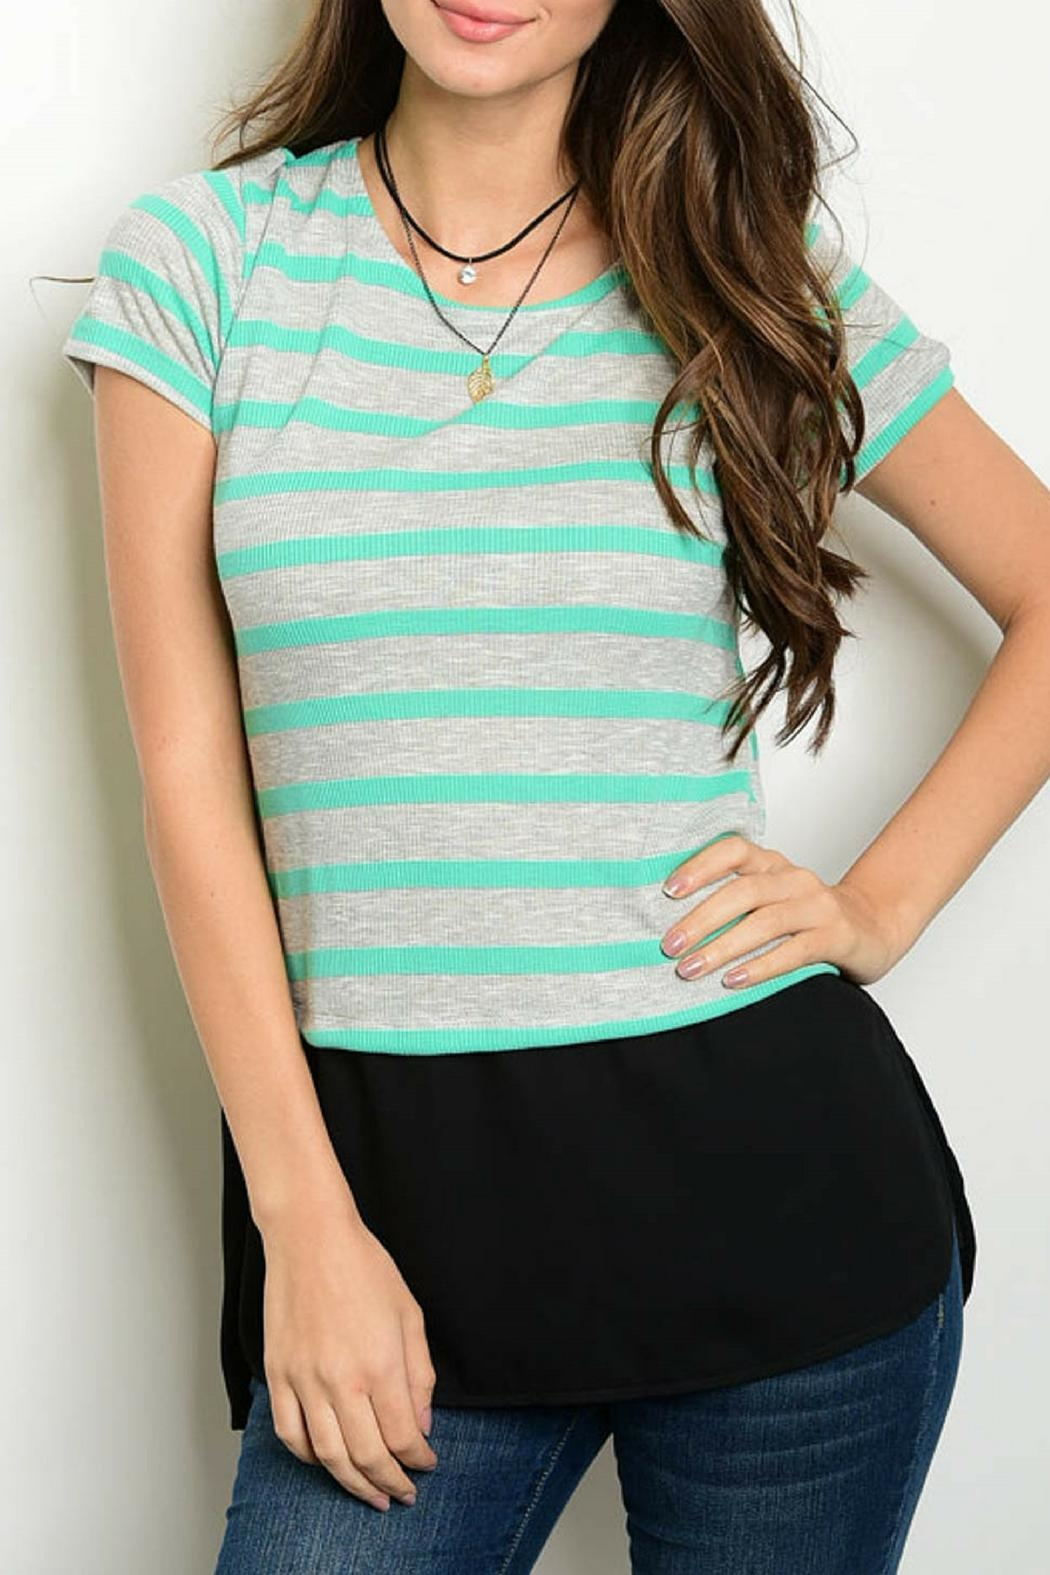 One Story Mint Tunic Top - Main Image